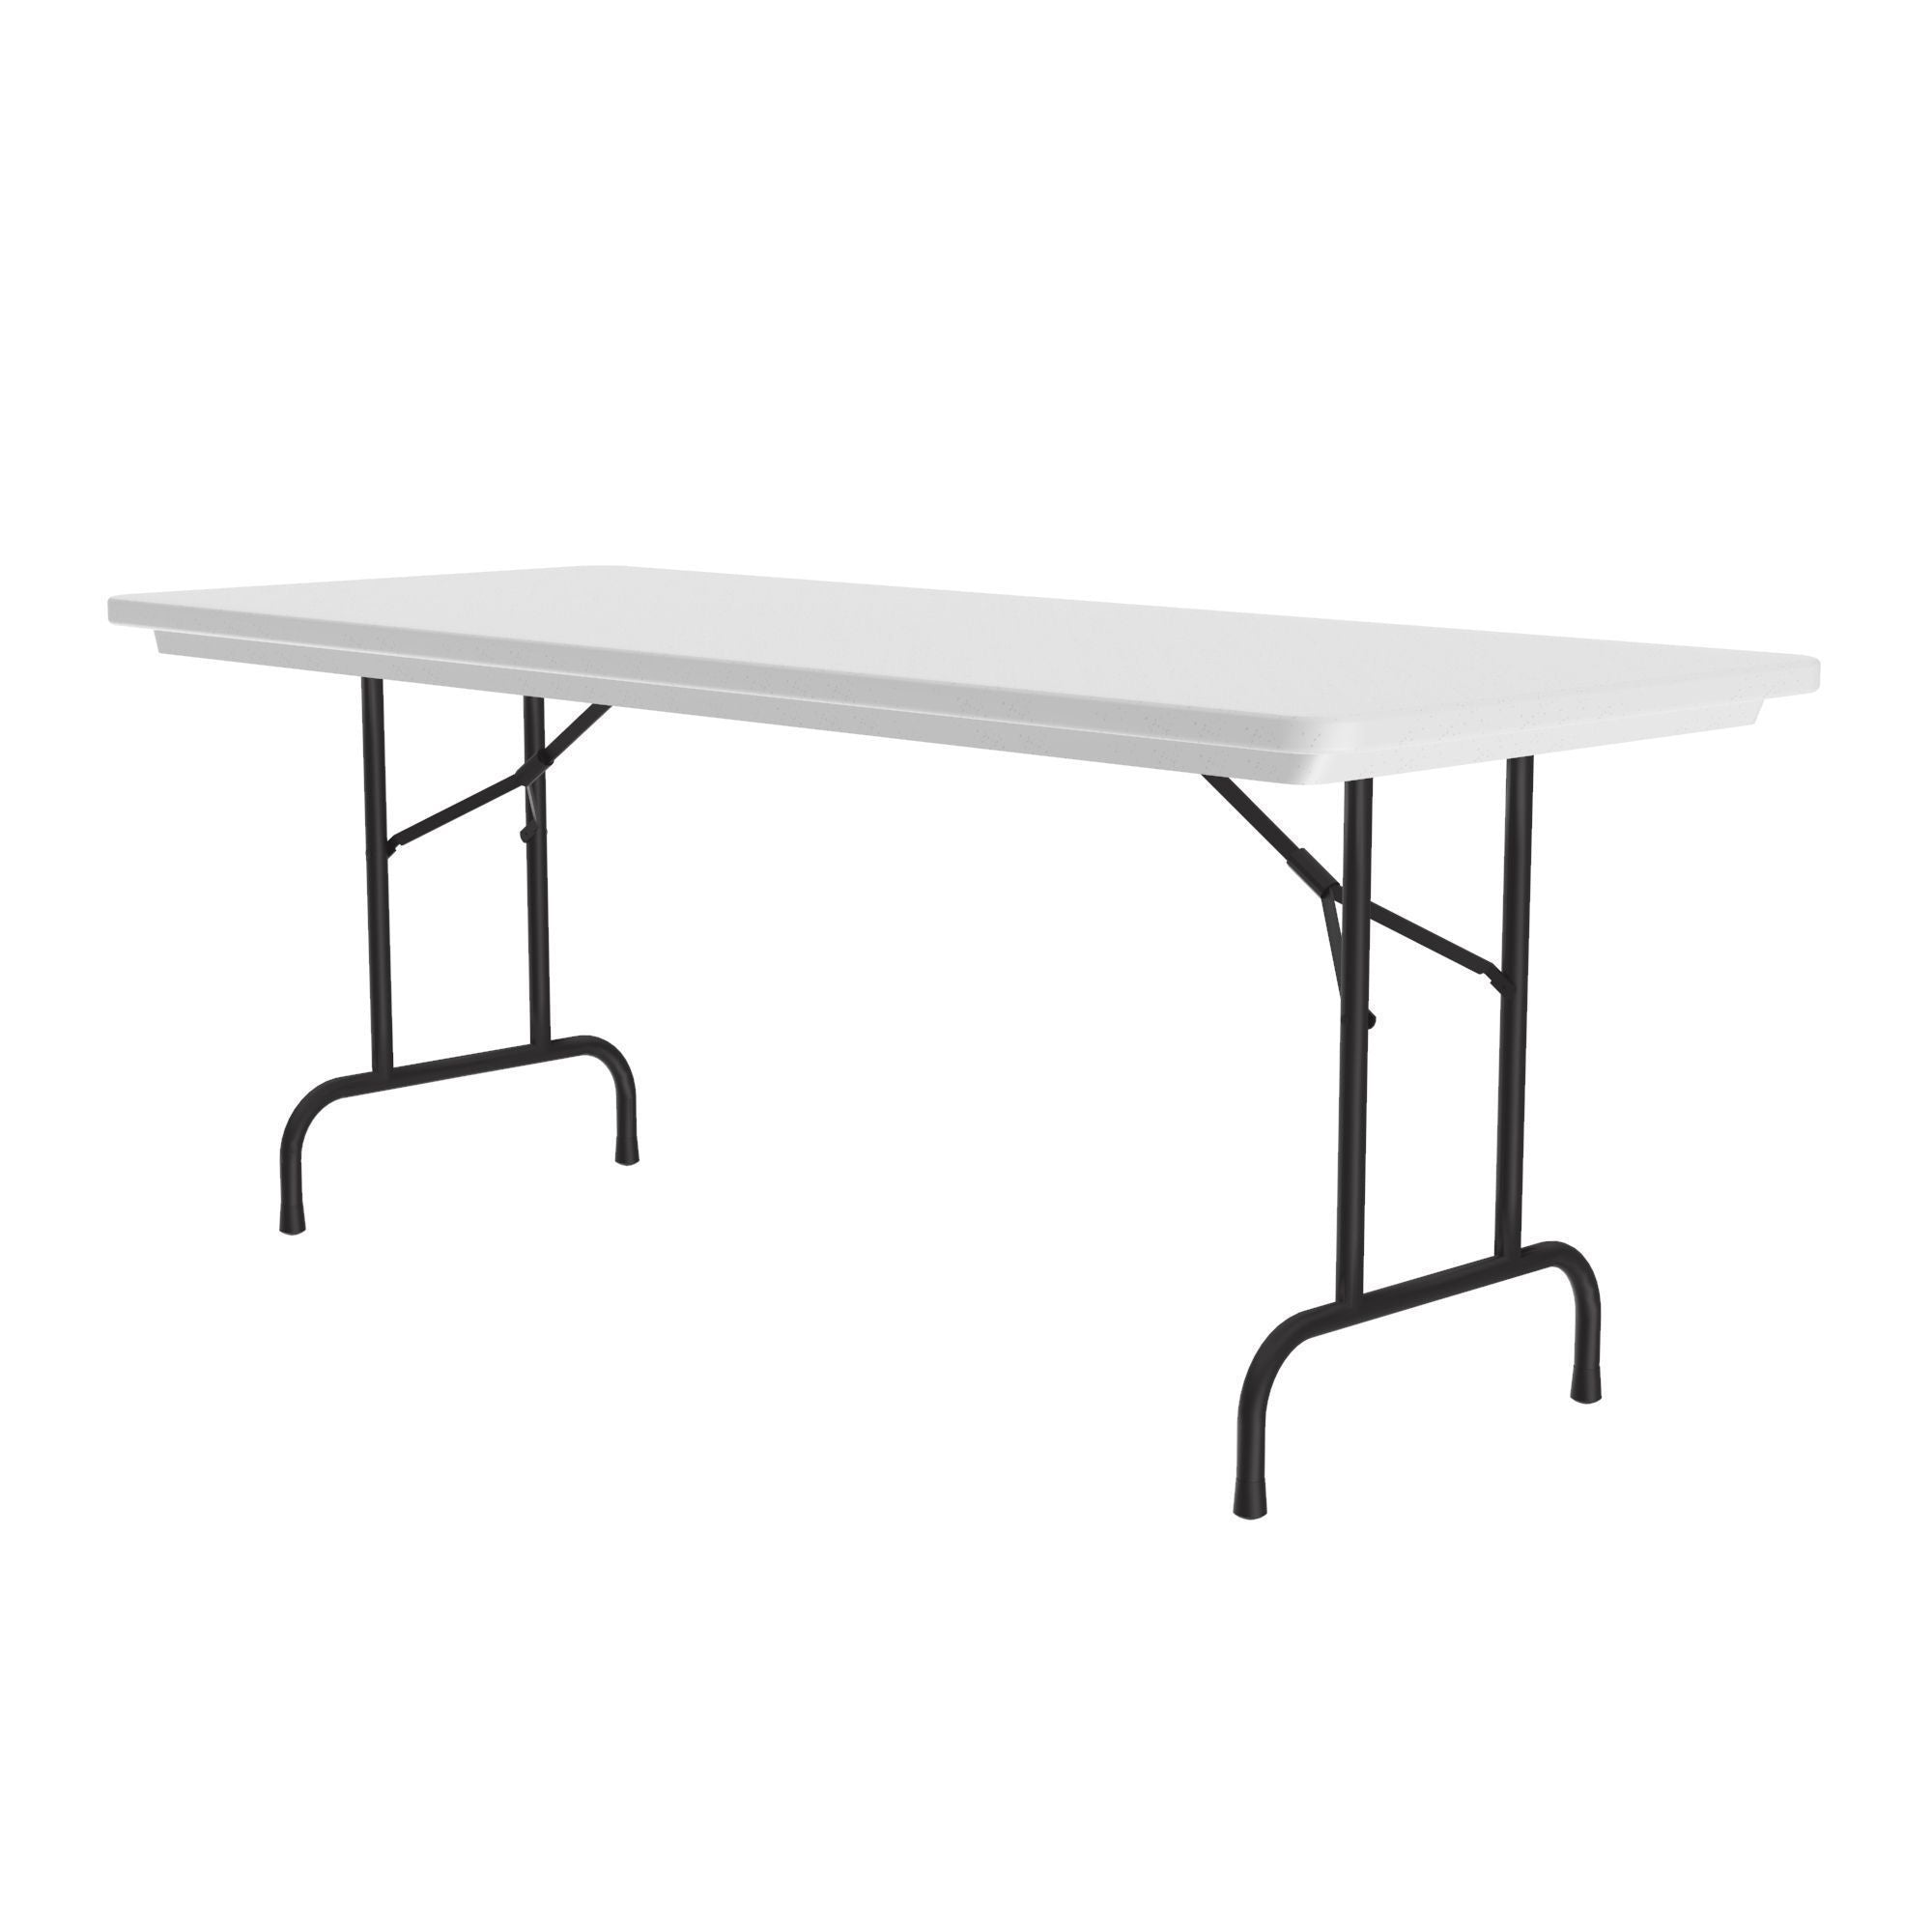 "Heavy Duty Commercial Use Blow Molded Folding Table, Standard Colors, Standard 29"" Fixed Height, 30 x 60"